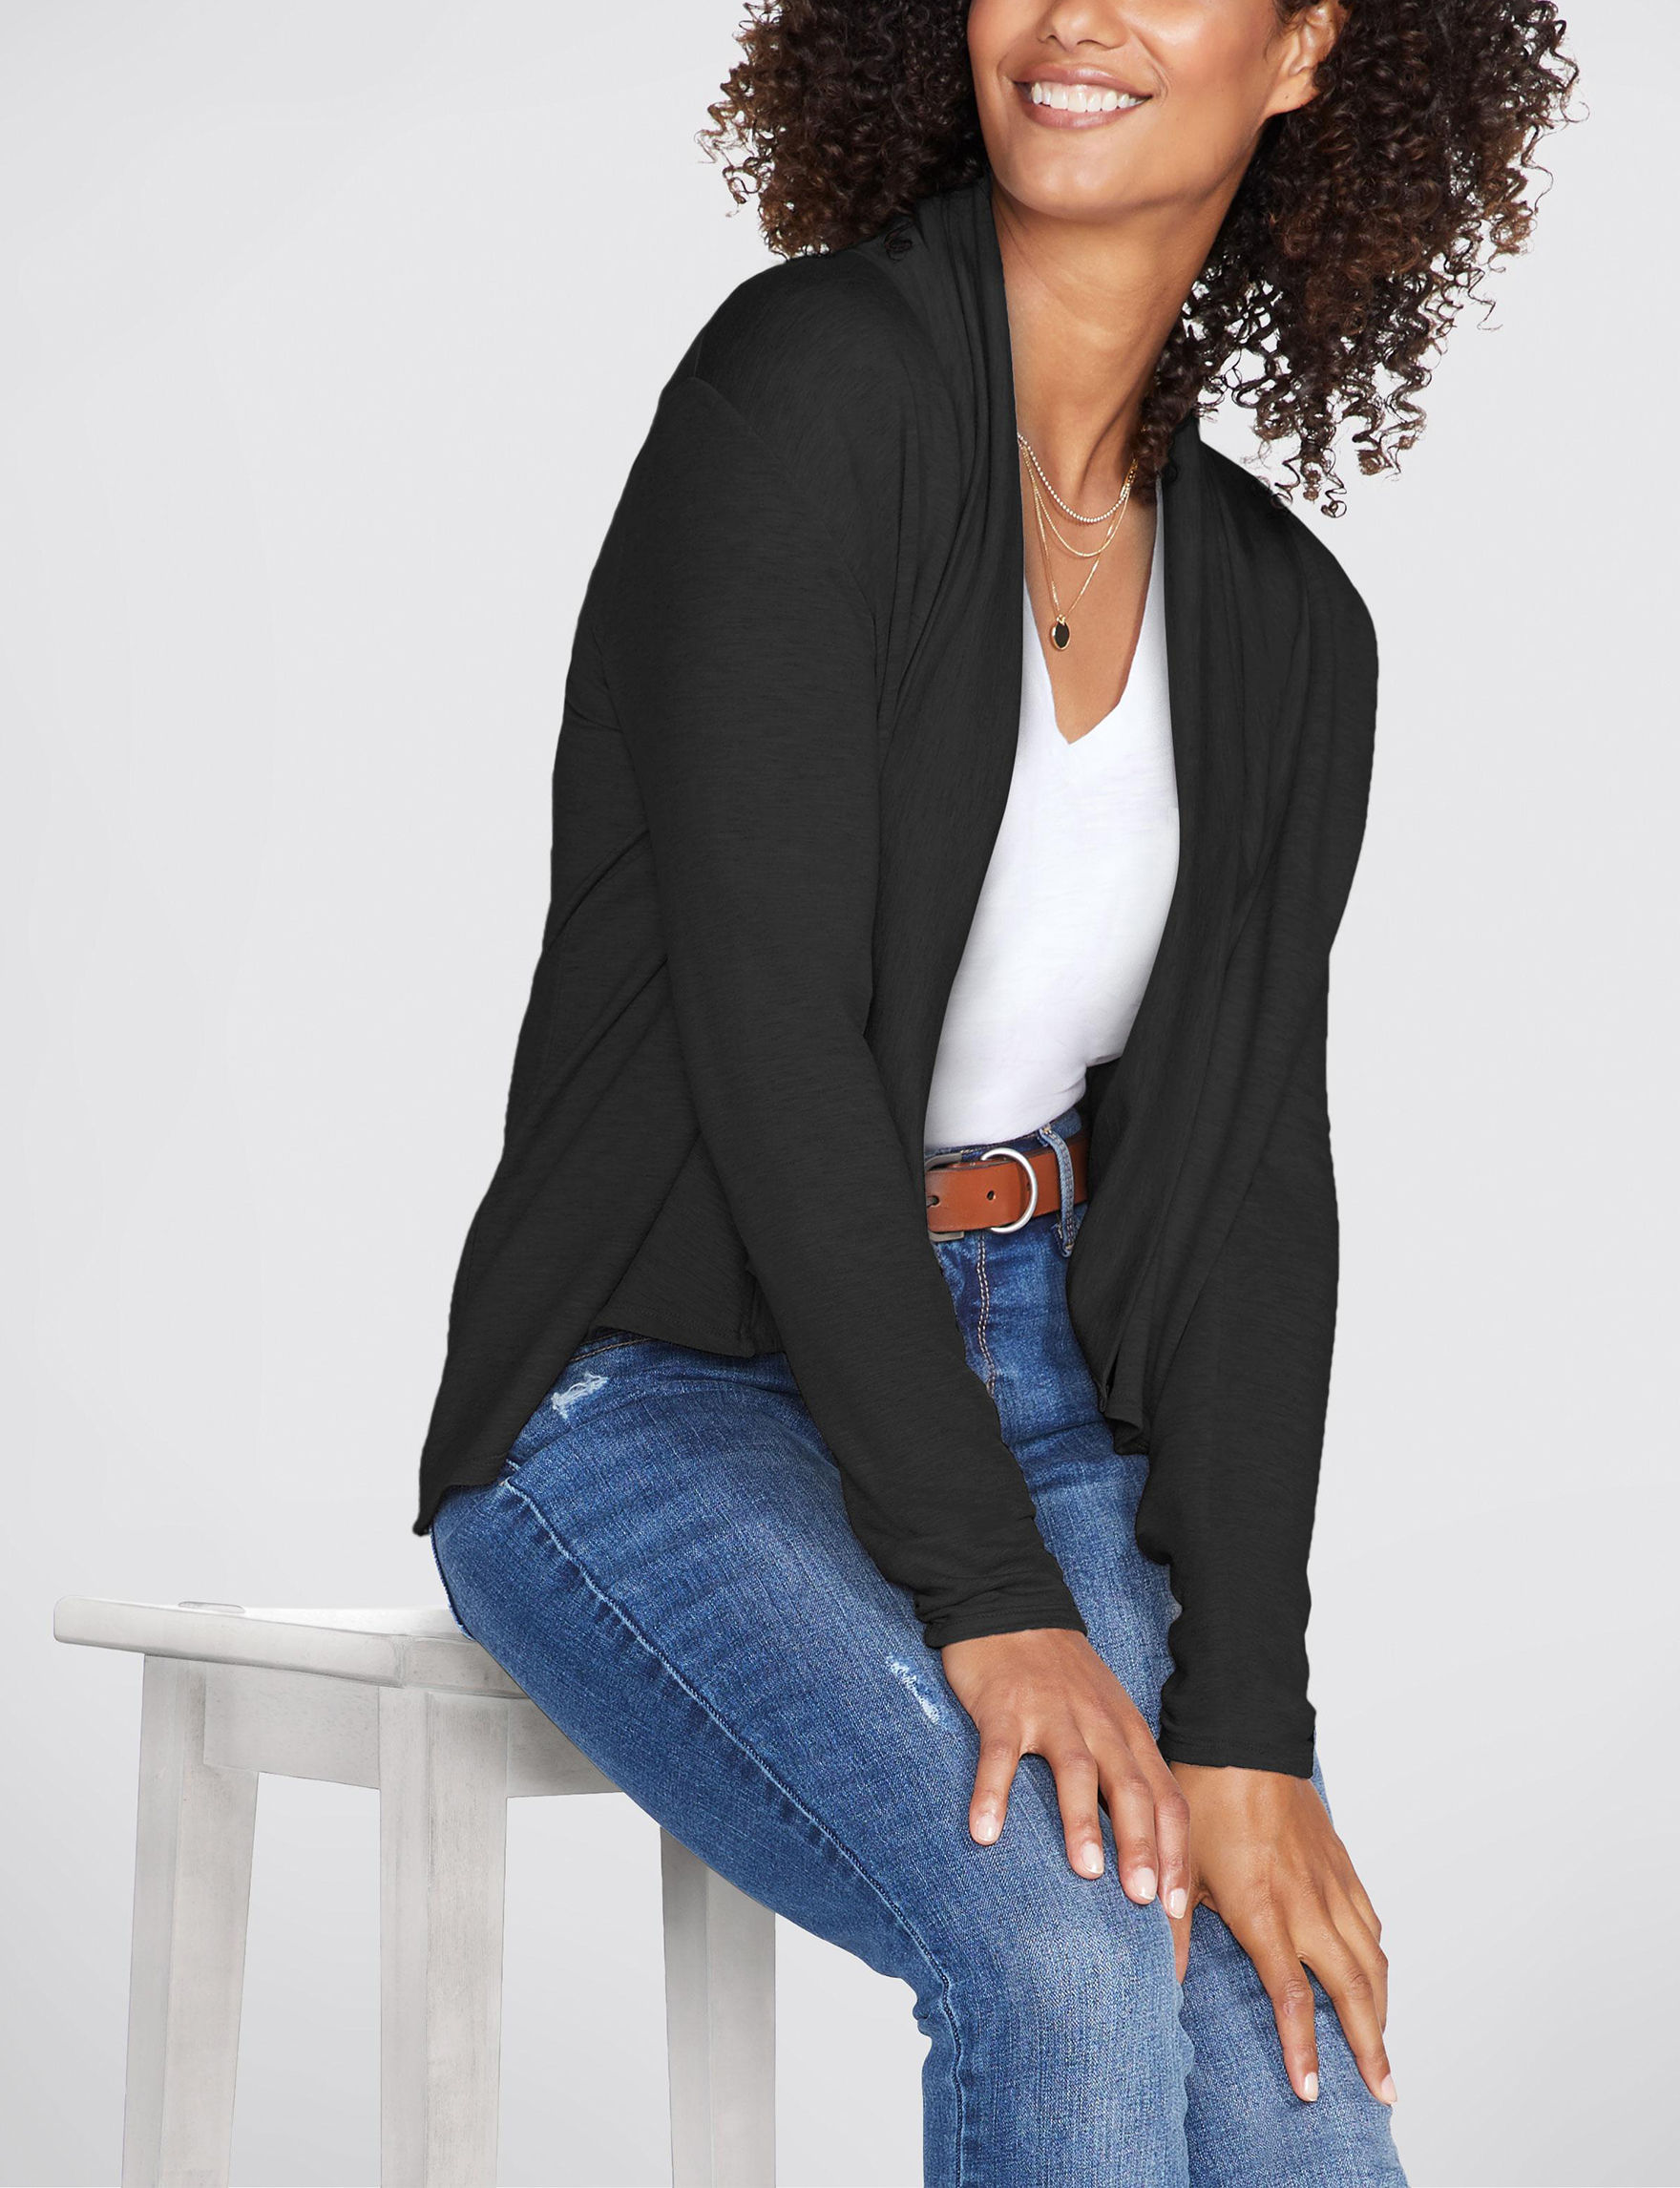 Skechers Black Active Cardigans